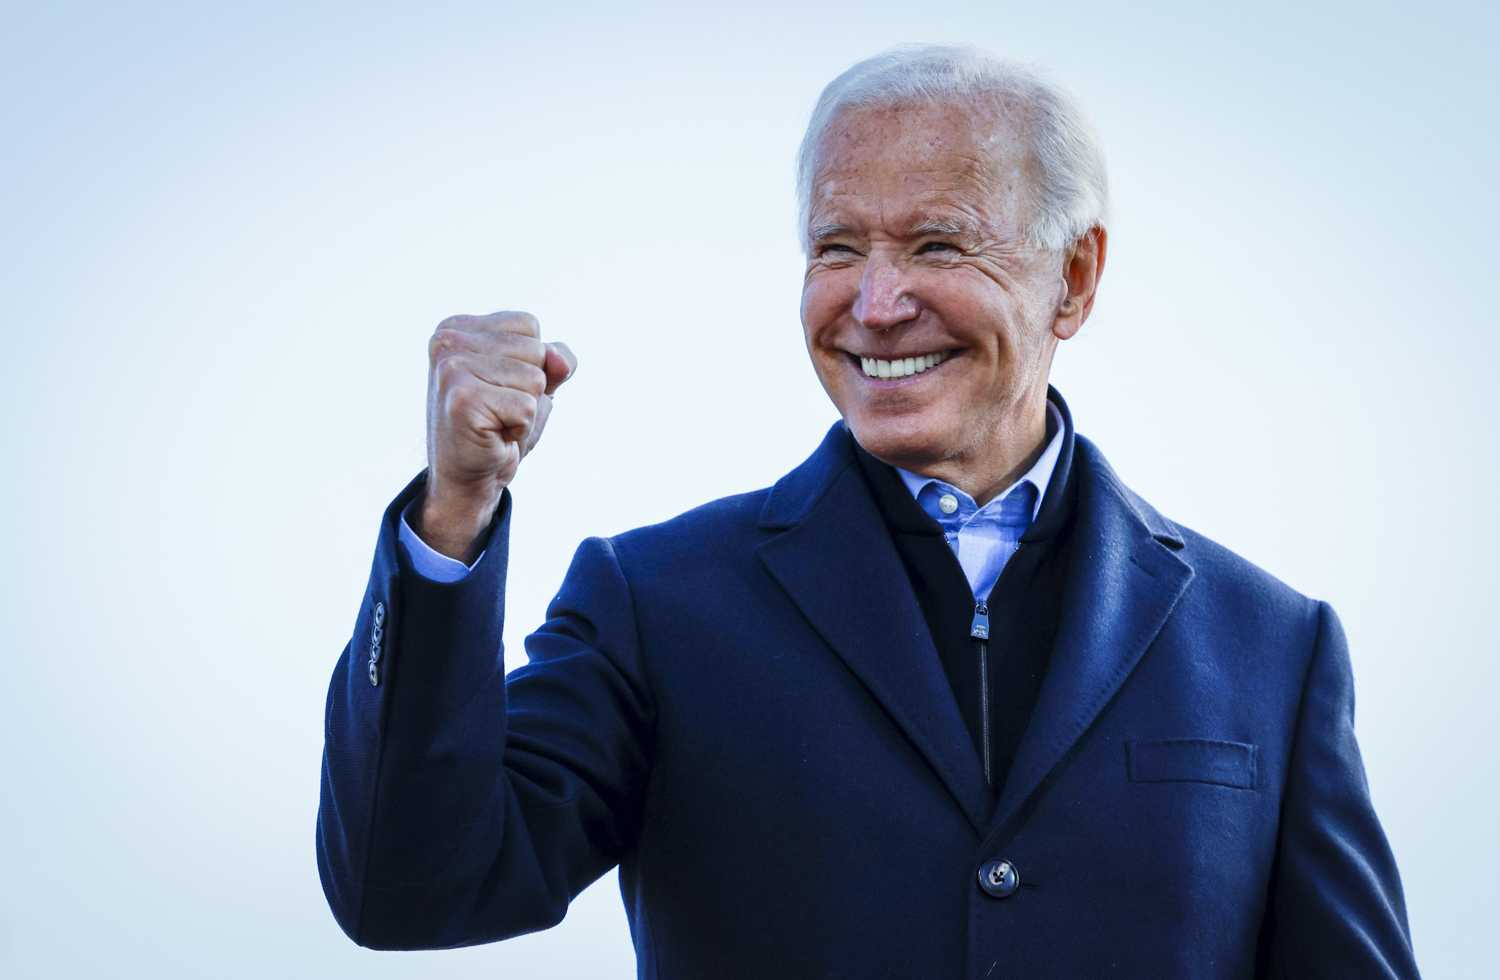 Biden corners big tech companies with his decree to boost competition